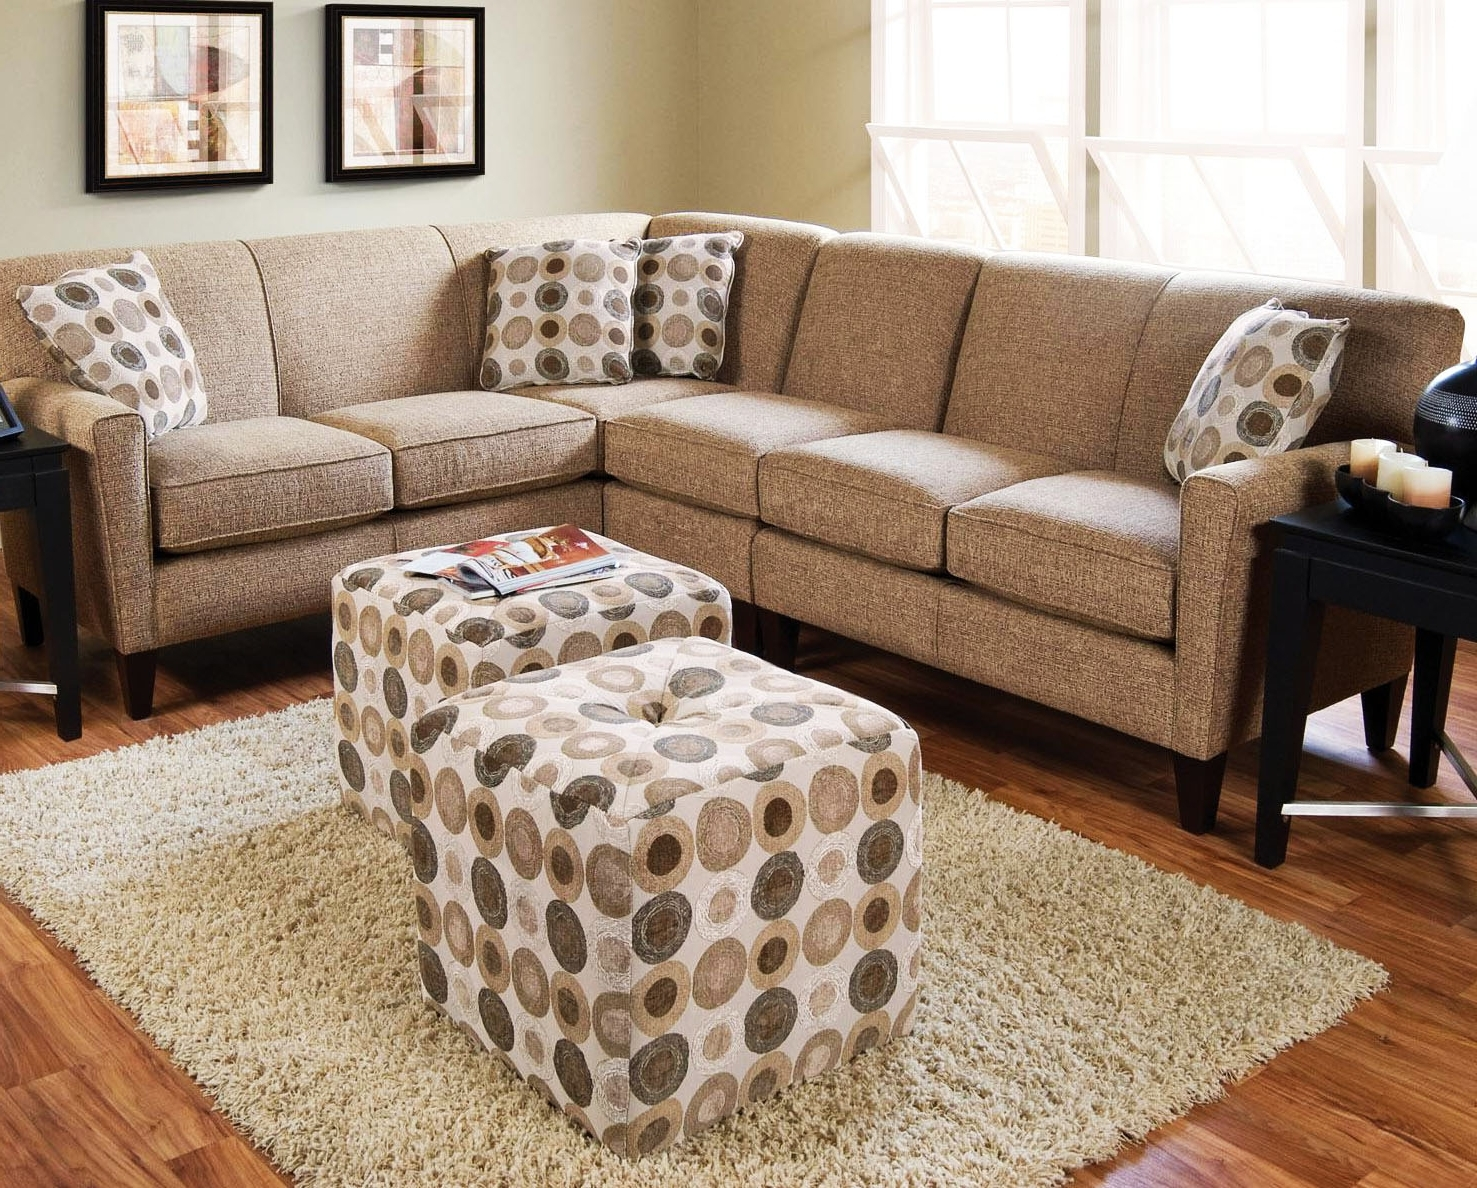 Genuine Leather Sectional Sectionals Sofas Top Grain Leather Sofa In Trendy Small Sectionals With Chaise (View 5 of 15)